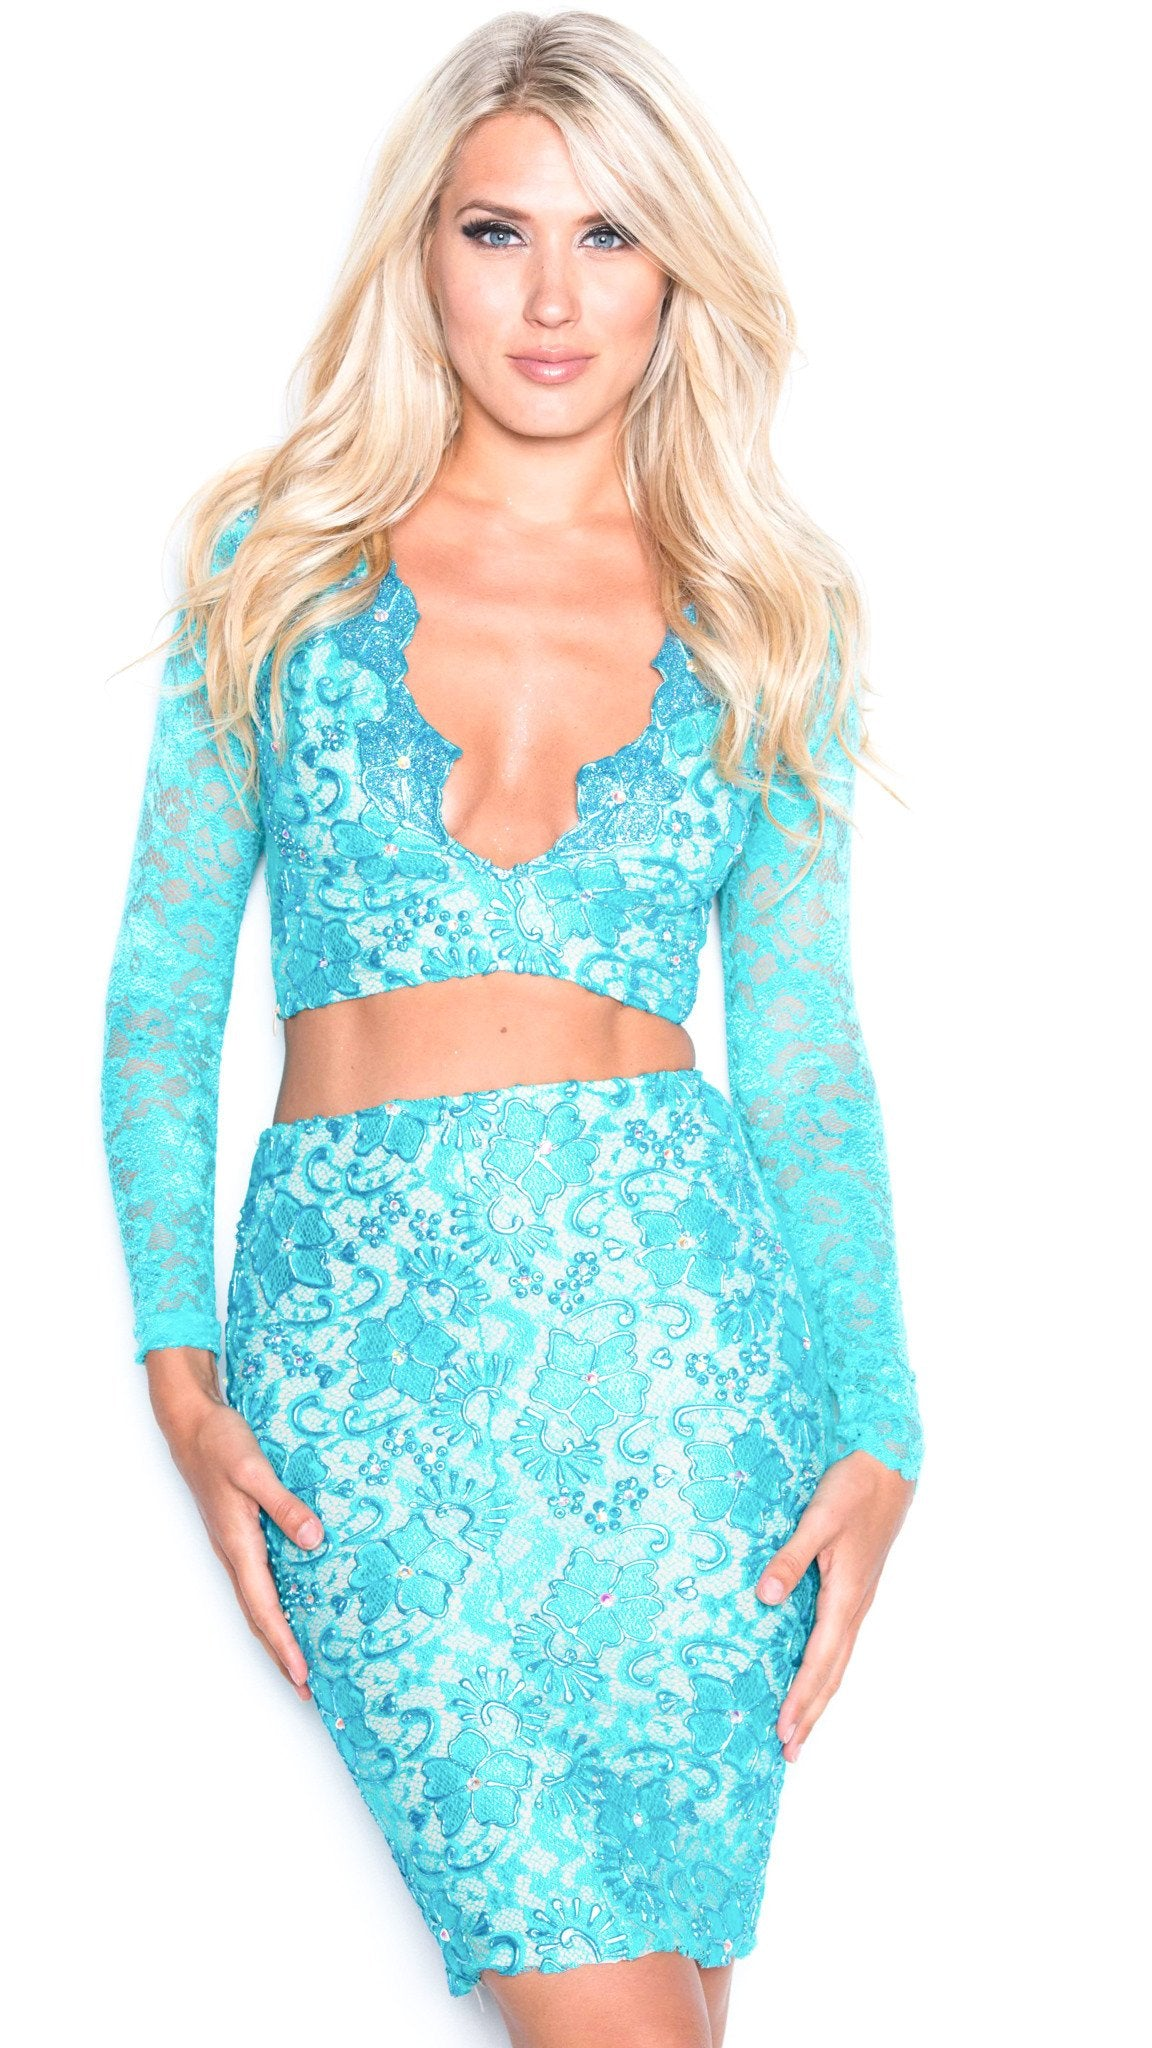 MELI TWO PIECE IN BABY BLUE